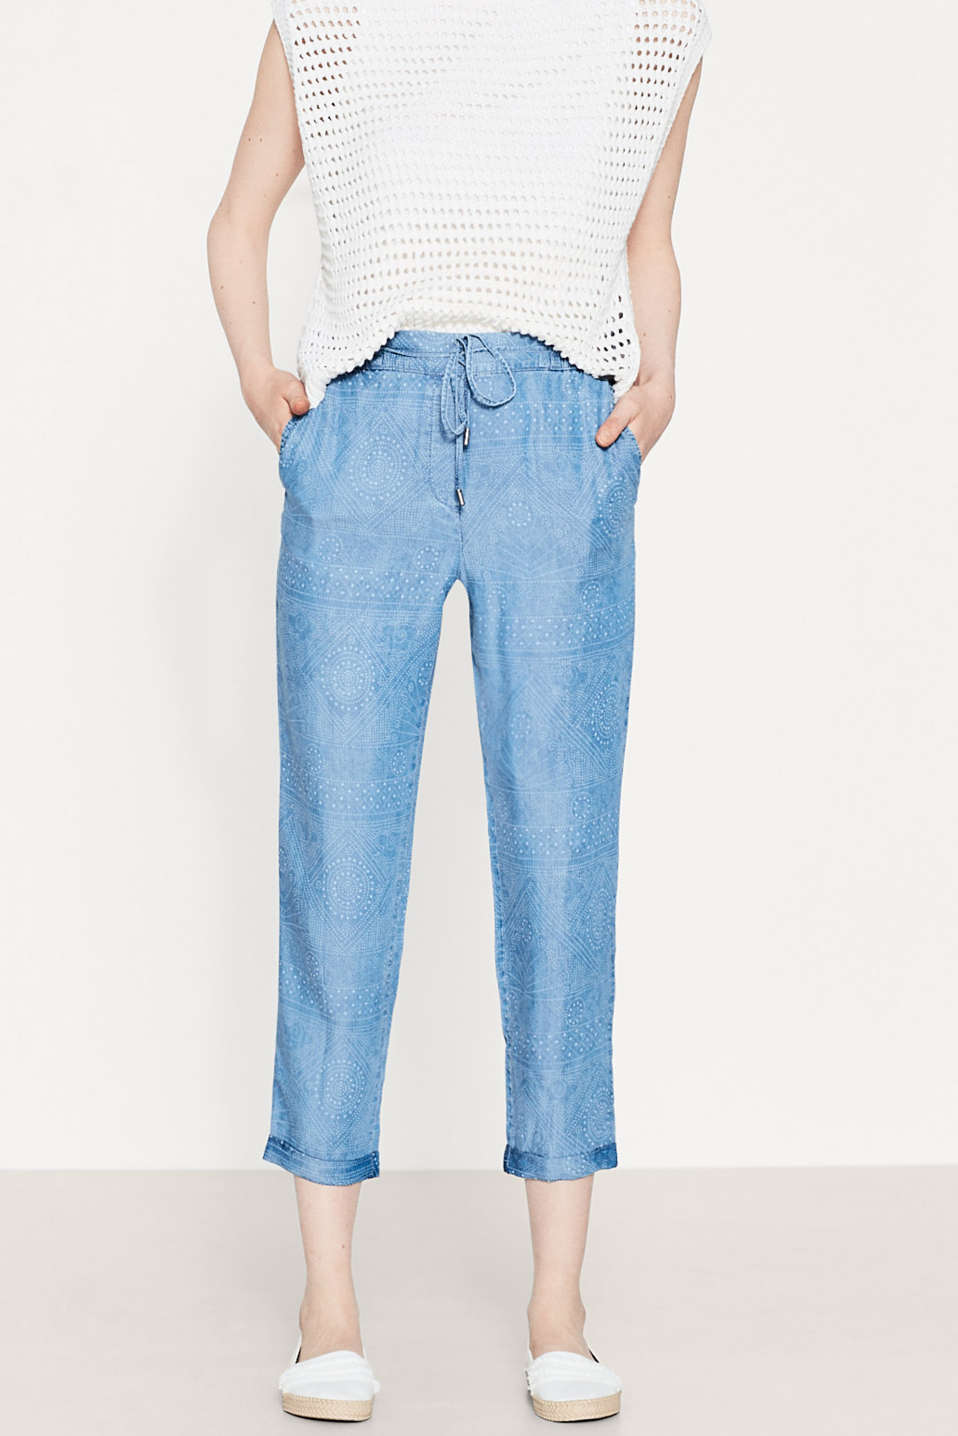 Flowing trousers with elasticated waistband